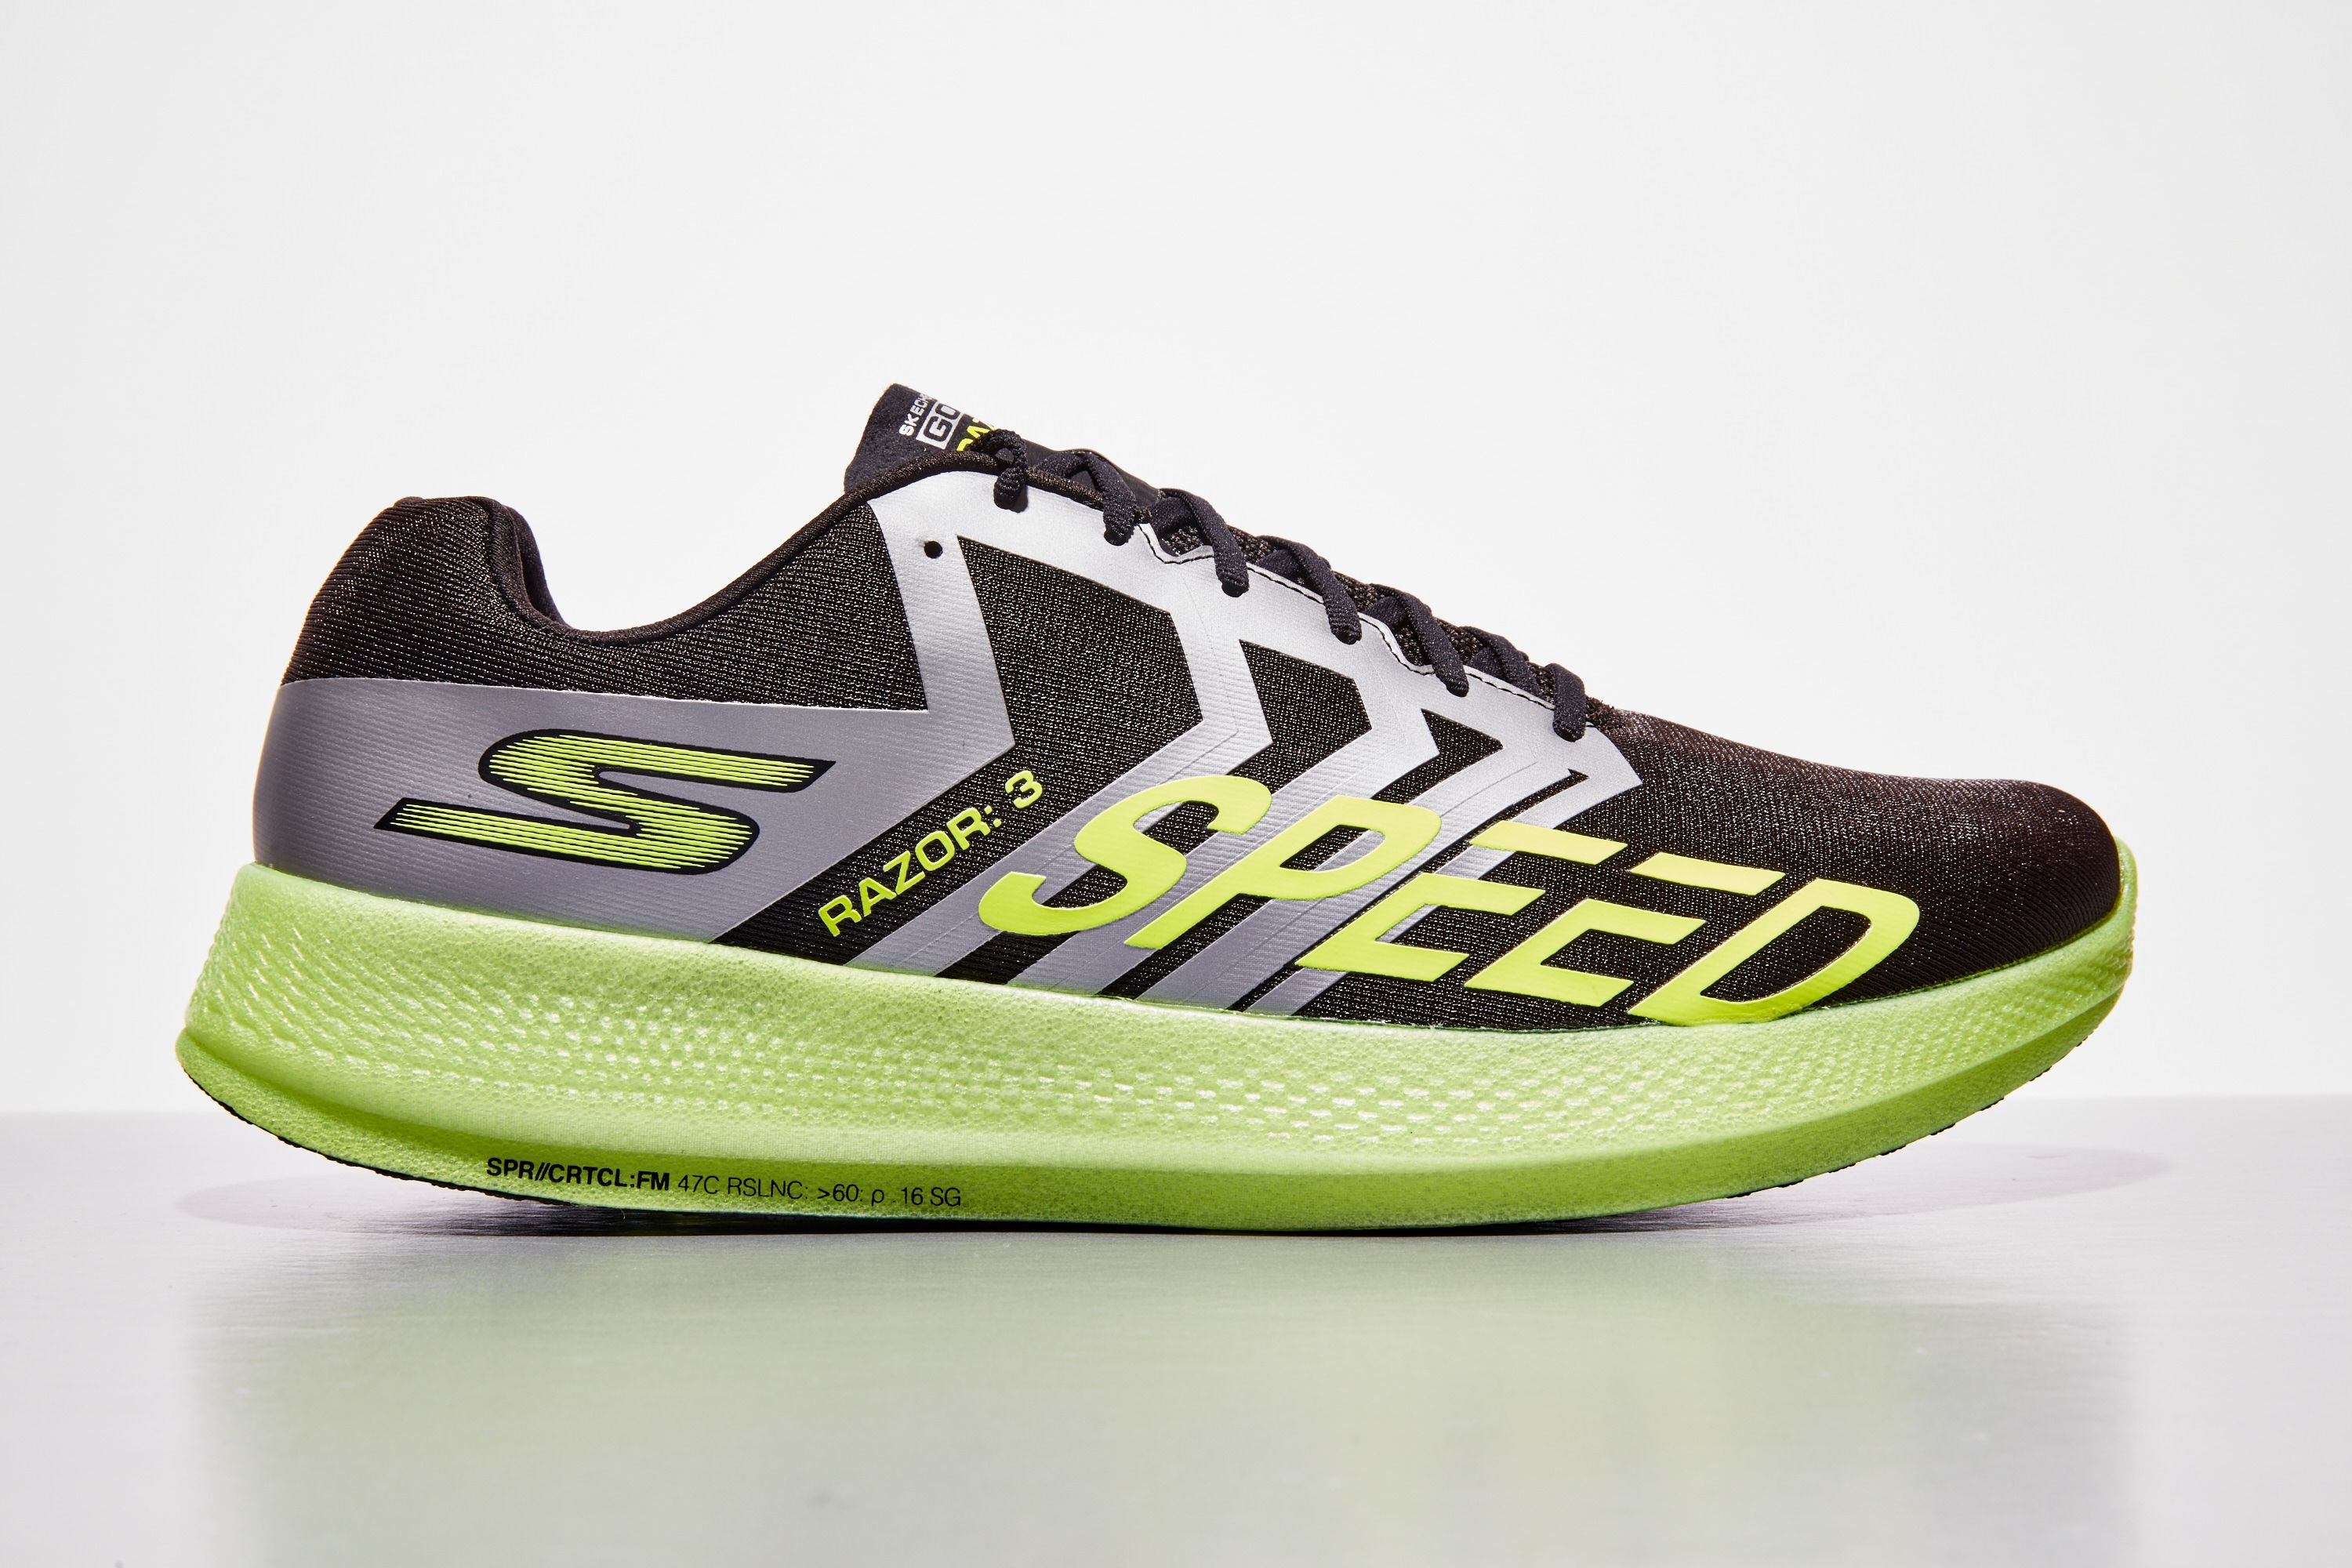 b515a5d11b1ca Skechers Running Shoes